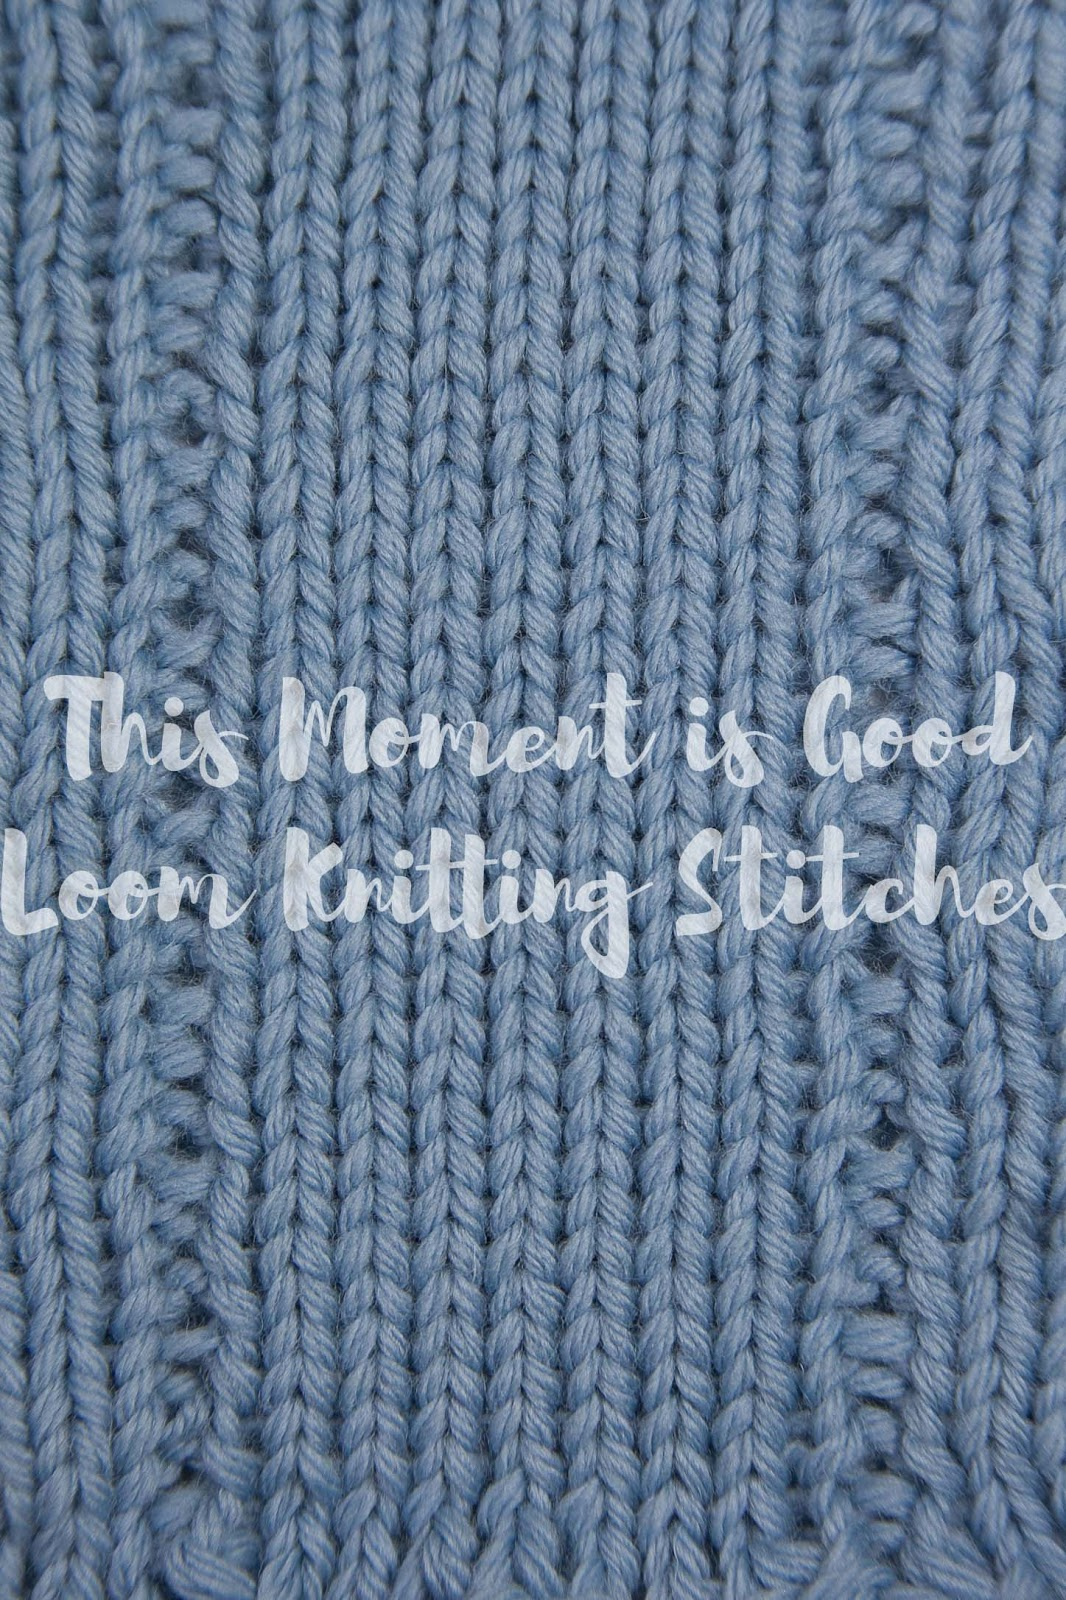 Gansey Eyelet Stitches And A Lace Panel Loom Loom Knitting By